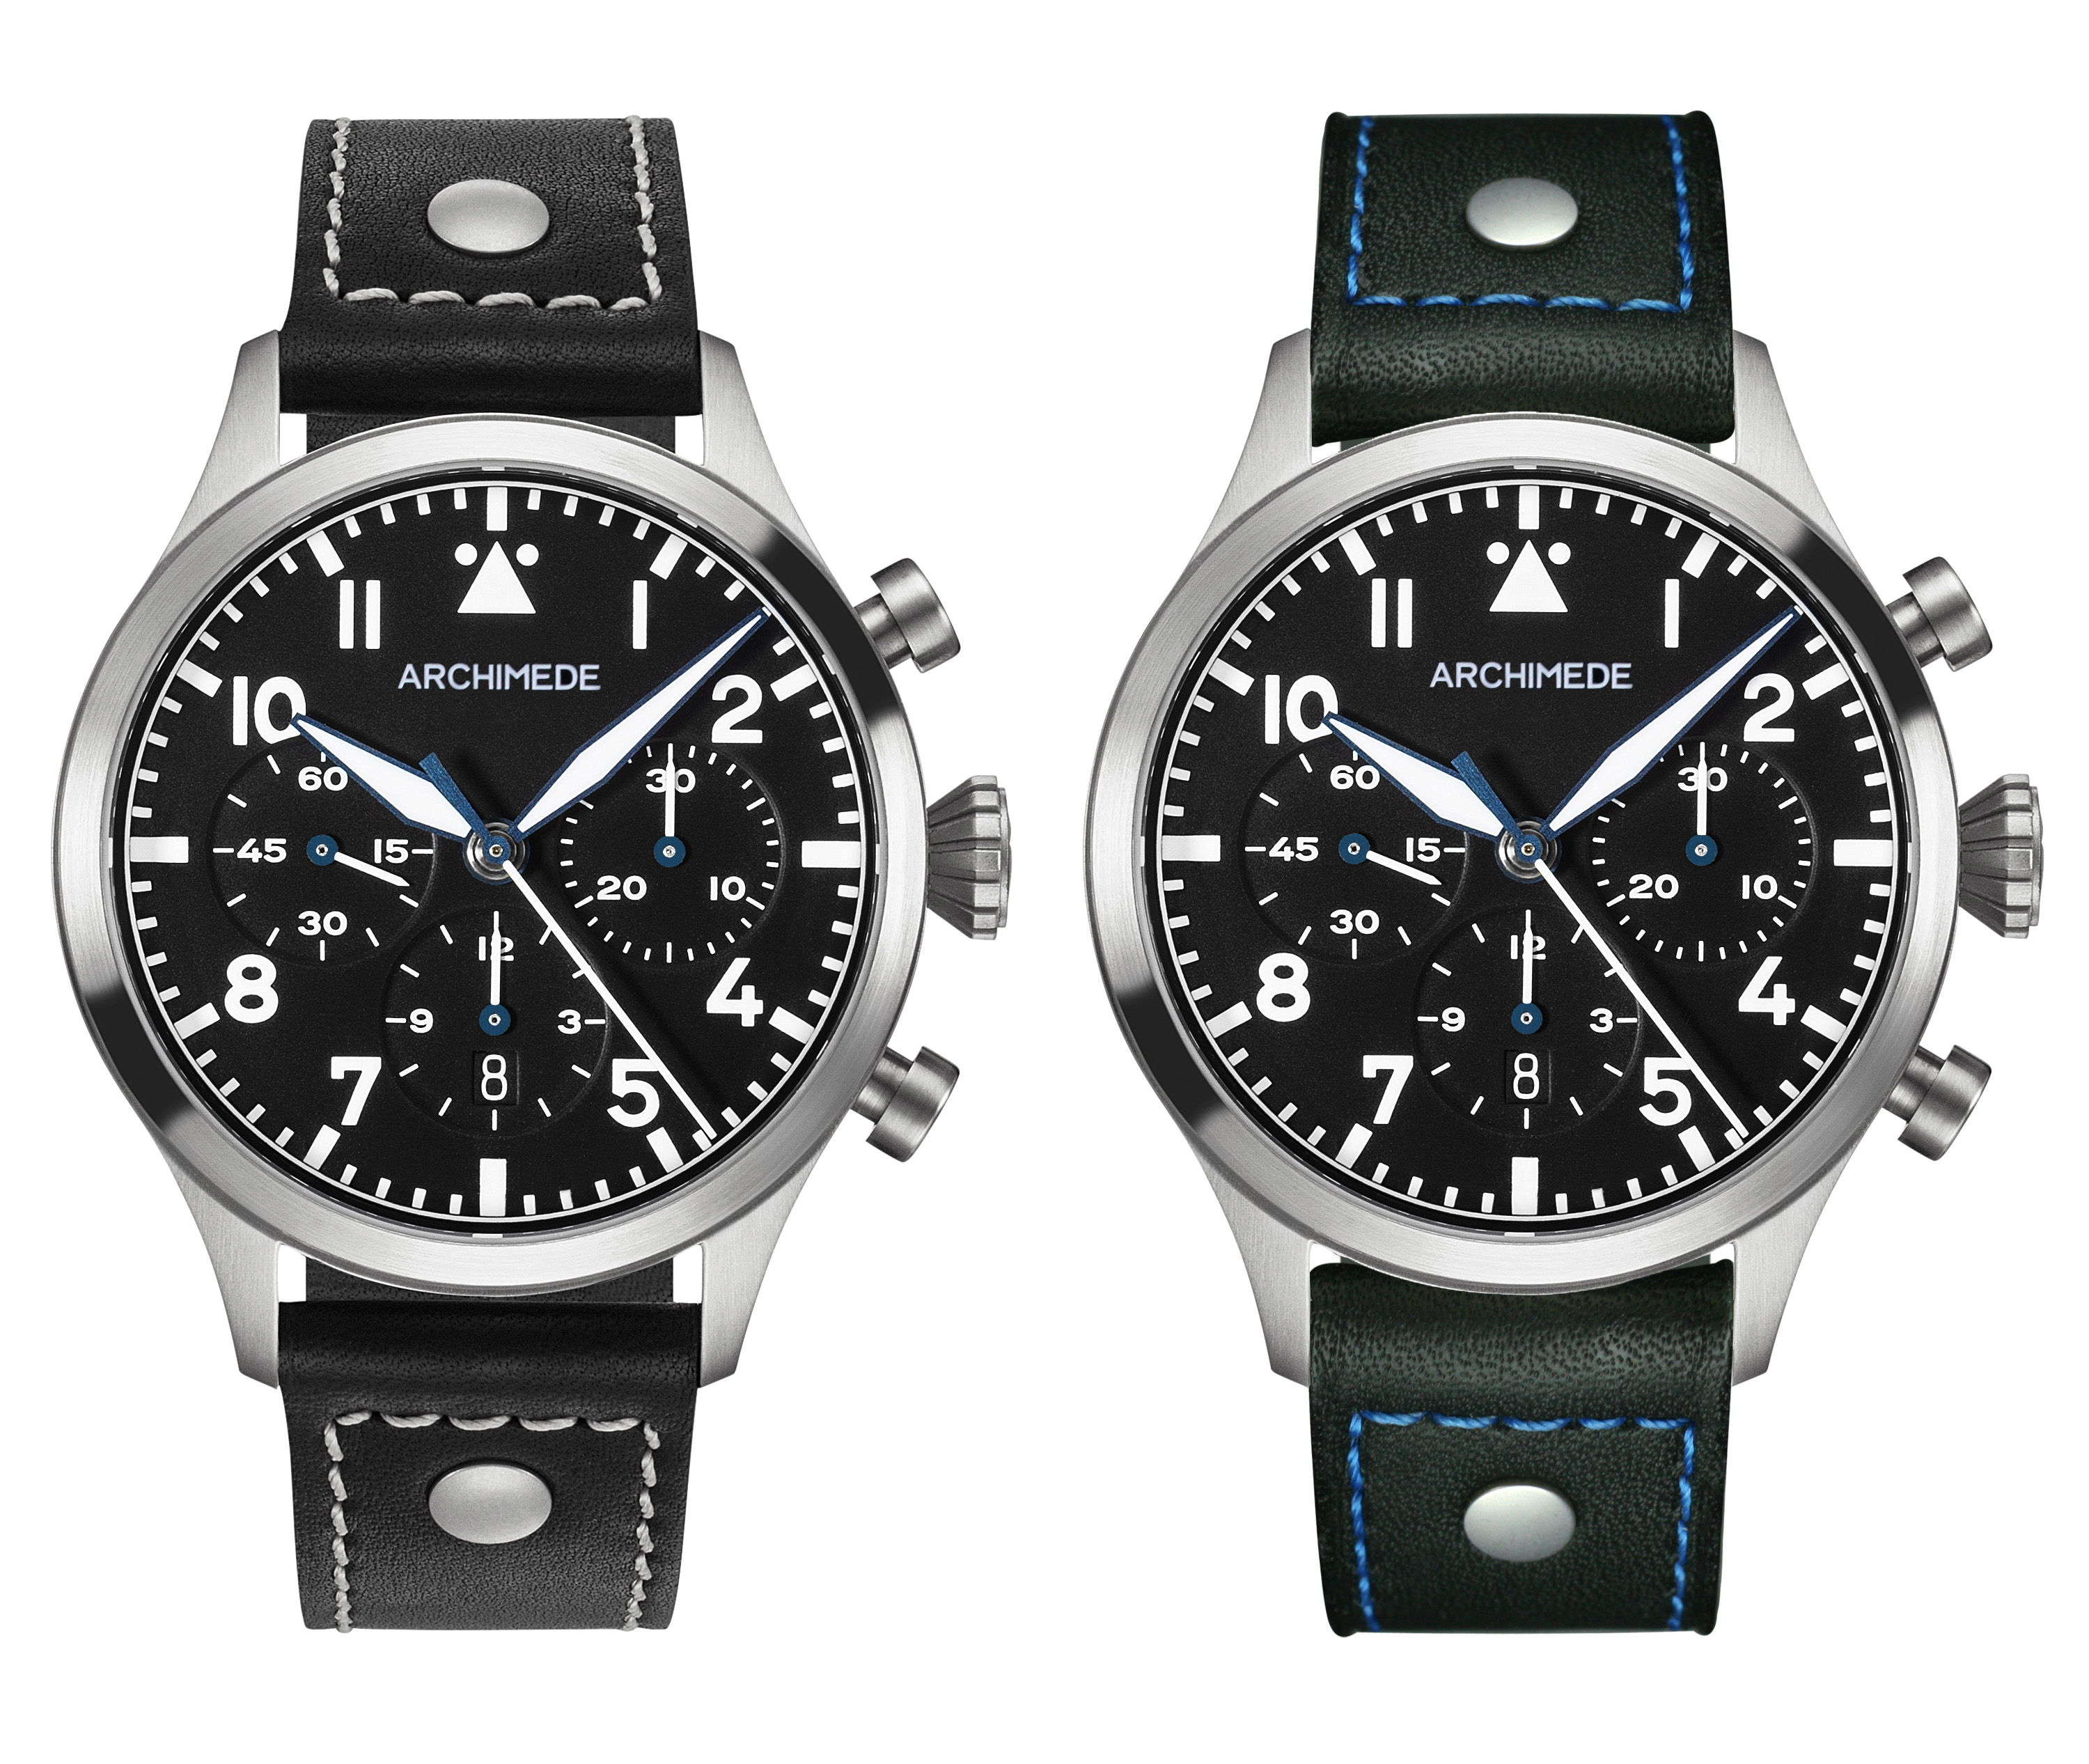 Archimede TriCompax Flieger Chronograph